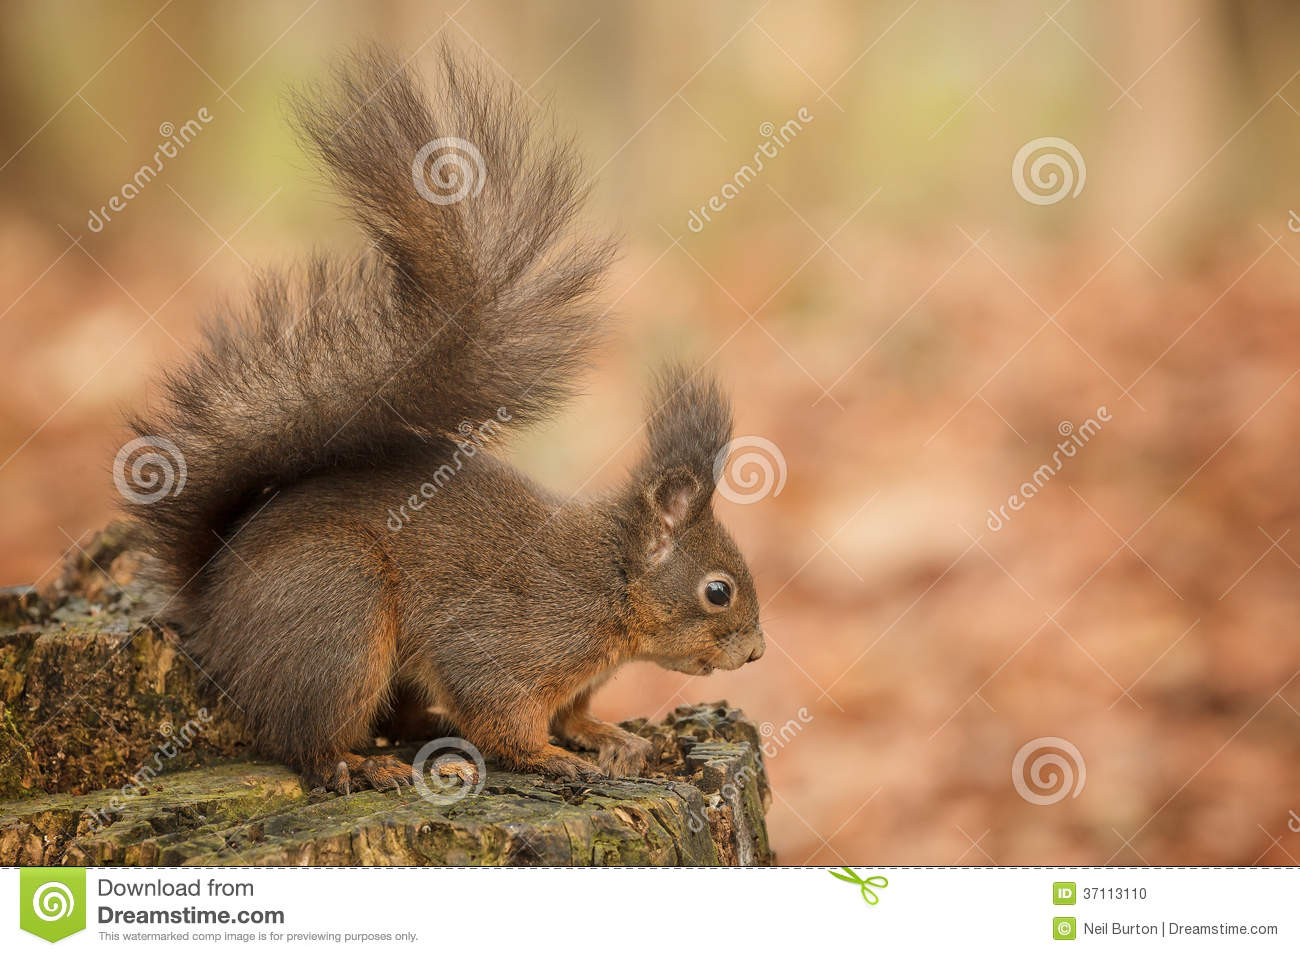 Red squirrel crouching